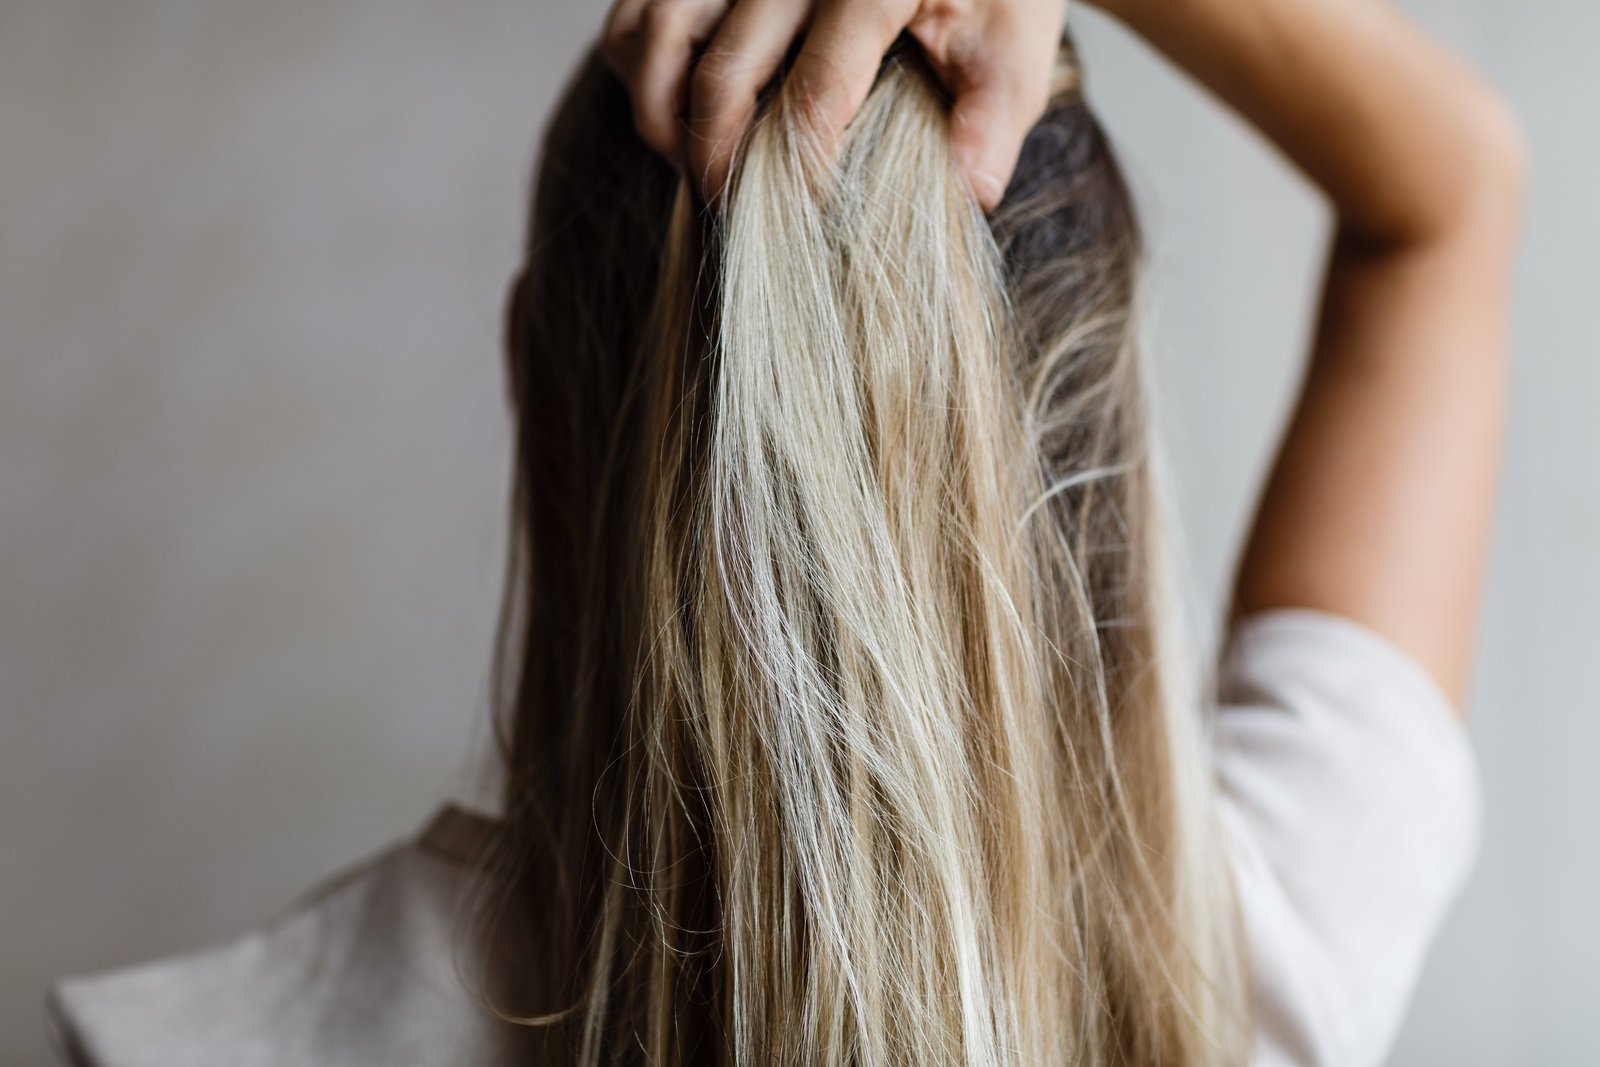 nominated-woman-holding-hand-her-long-blonde-hair-view-from-behind-coloration-ombre_t20_LOondo